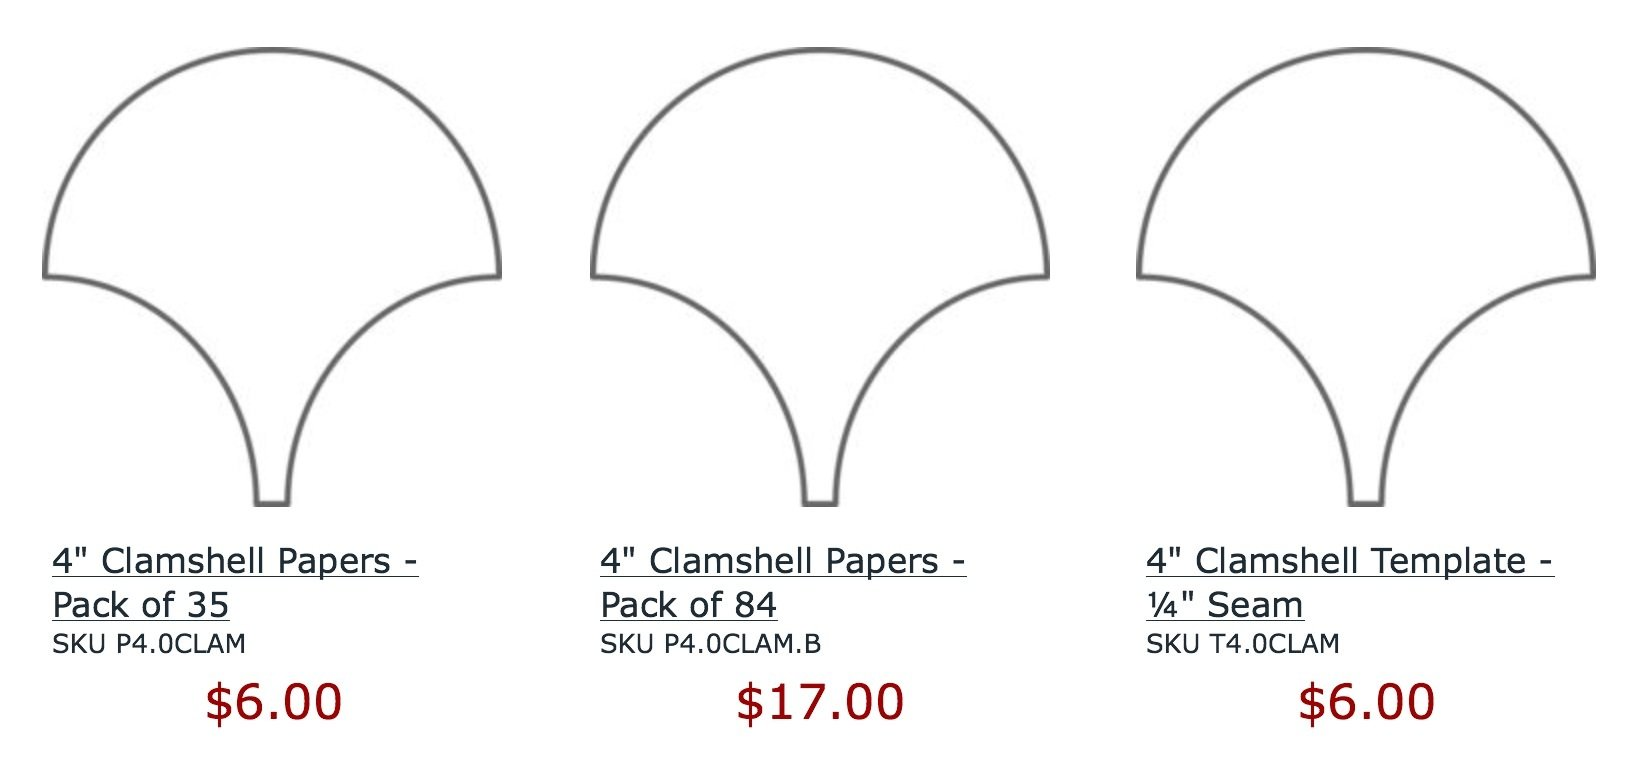 Clam shell papers 4 pack of 35